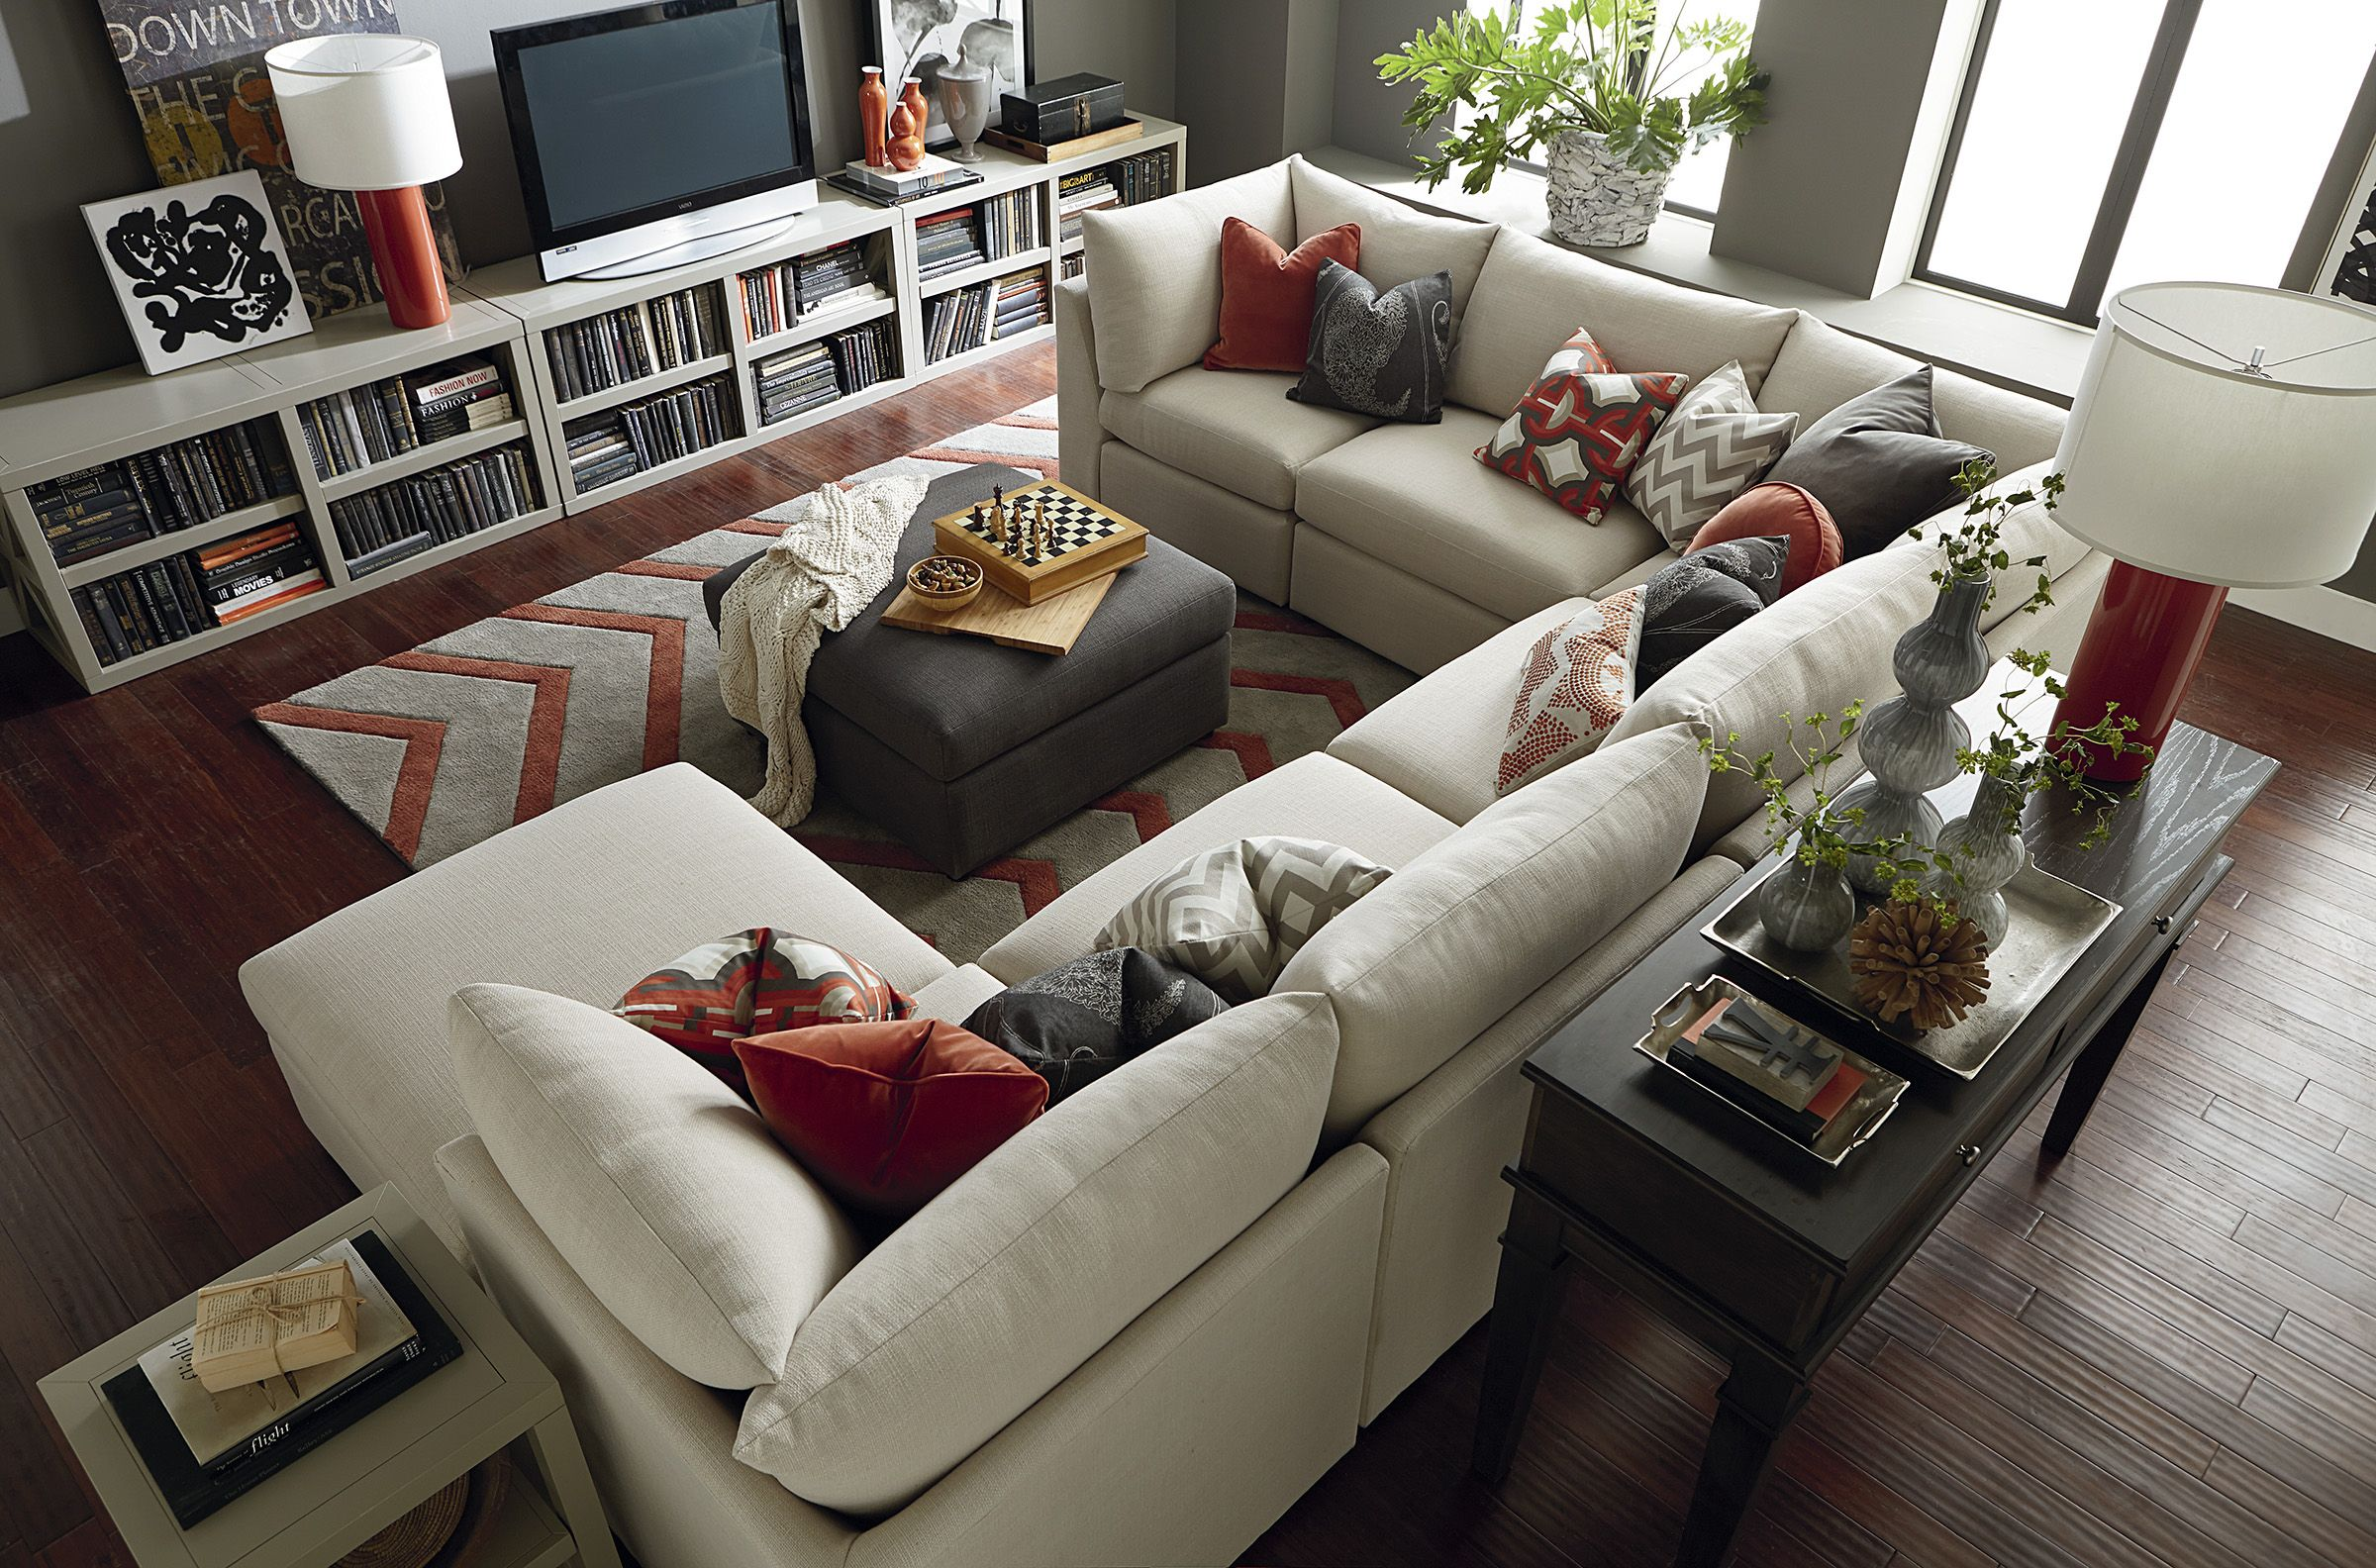 big sofas in small rooms great deals on sectional beckham u shaped by bassett furniture customize